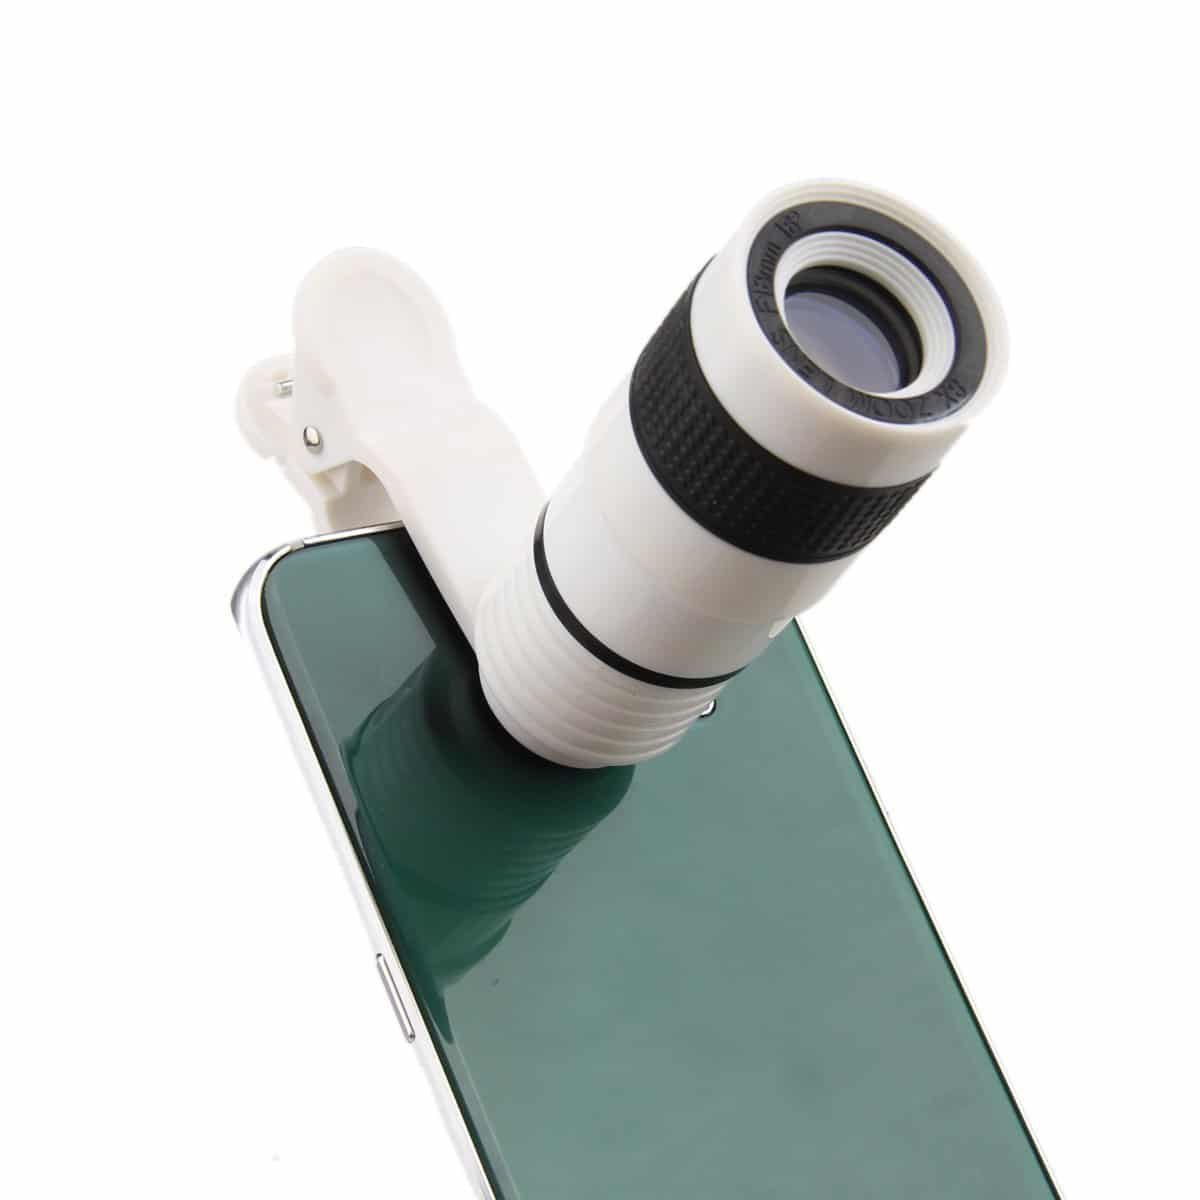 ONX3 Acer One 10 10.1'' (White 8x Zoom) Universal Clip-on 8x Zoom Optical Telescope Manual Focus Phone Camera Lens by ONX3® (Image #2)